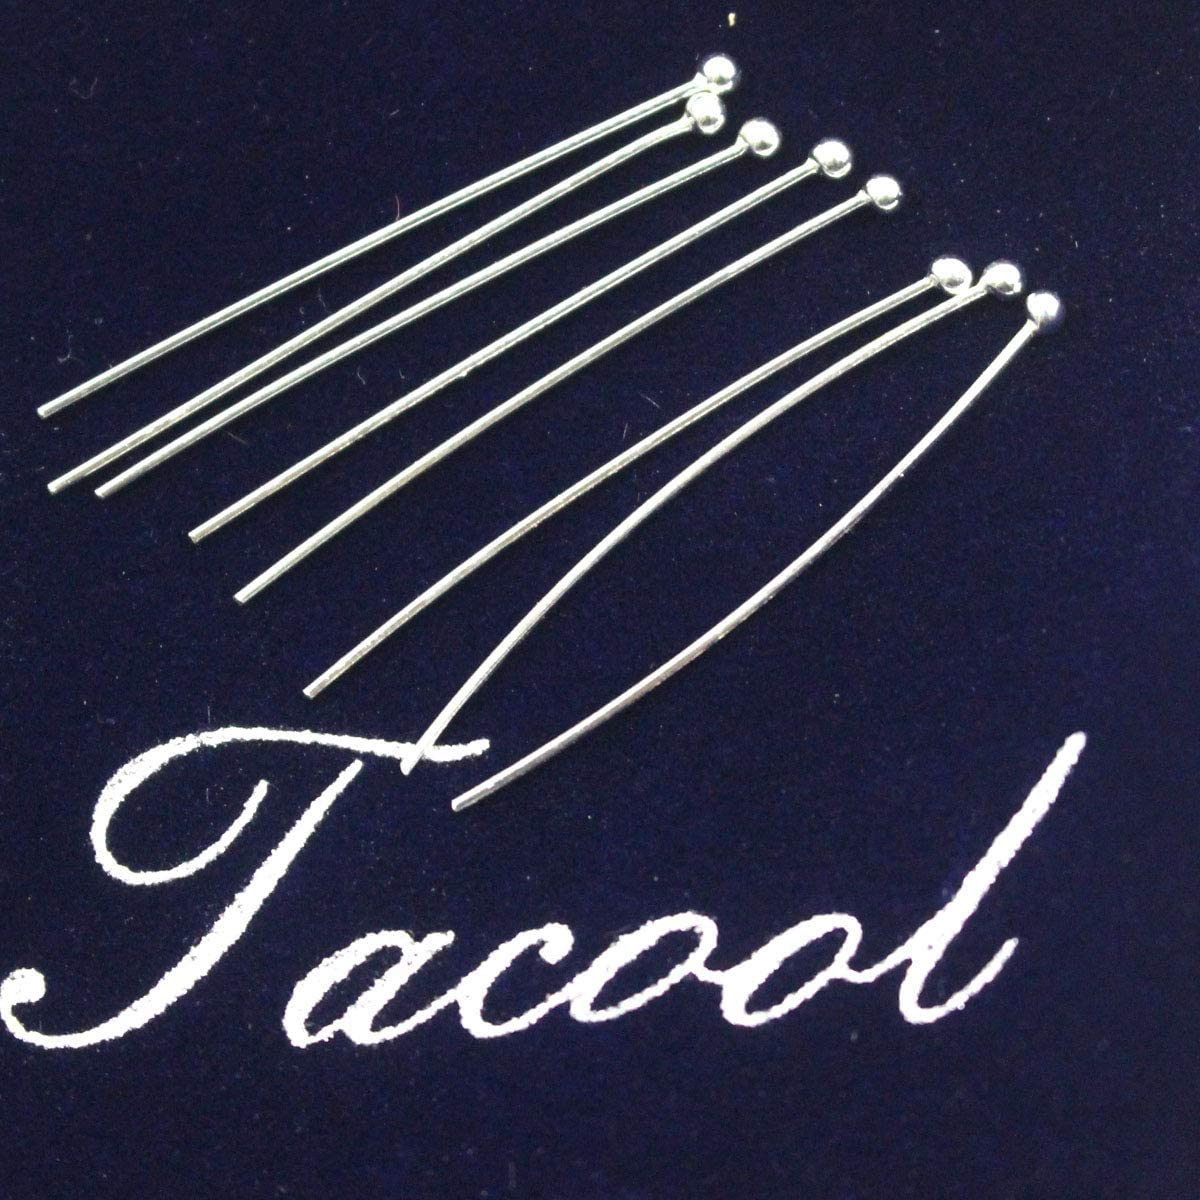 Tacool Real 925 Sterling Silver Head Pins for Gemstone Jewelry Making Beads Silver, 1.5x20mm